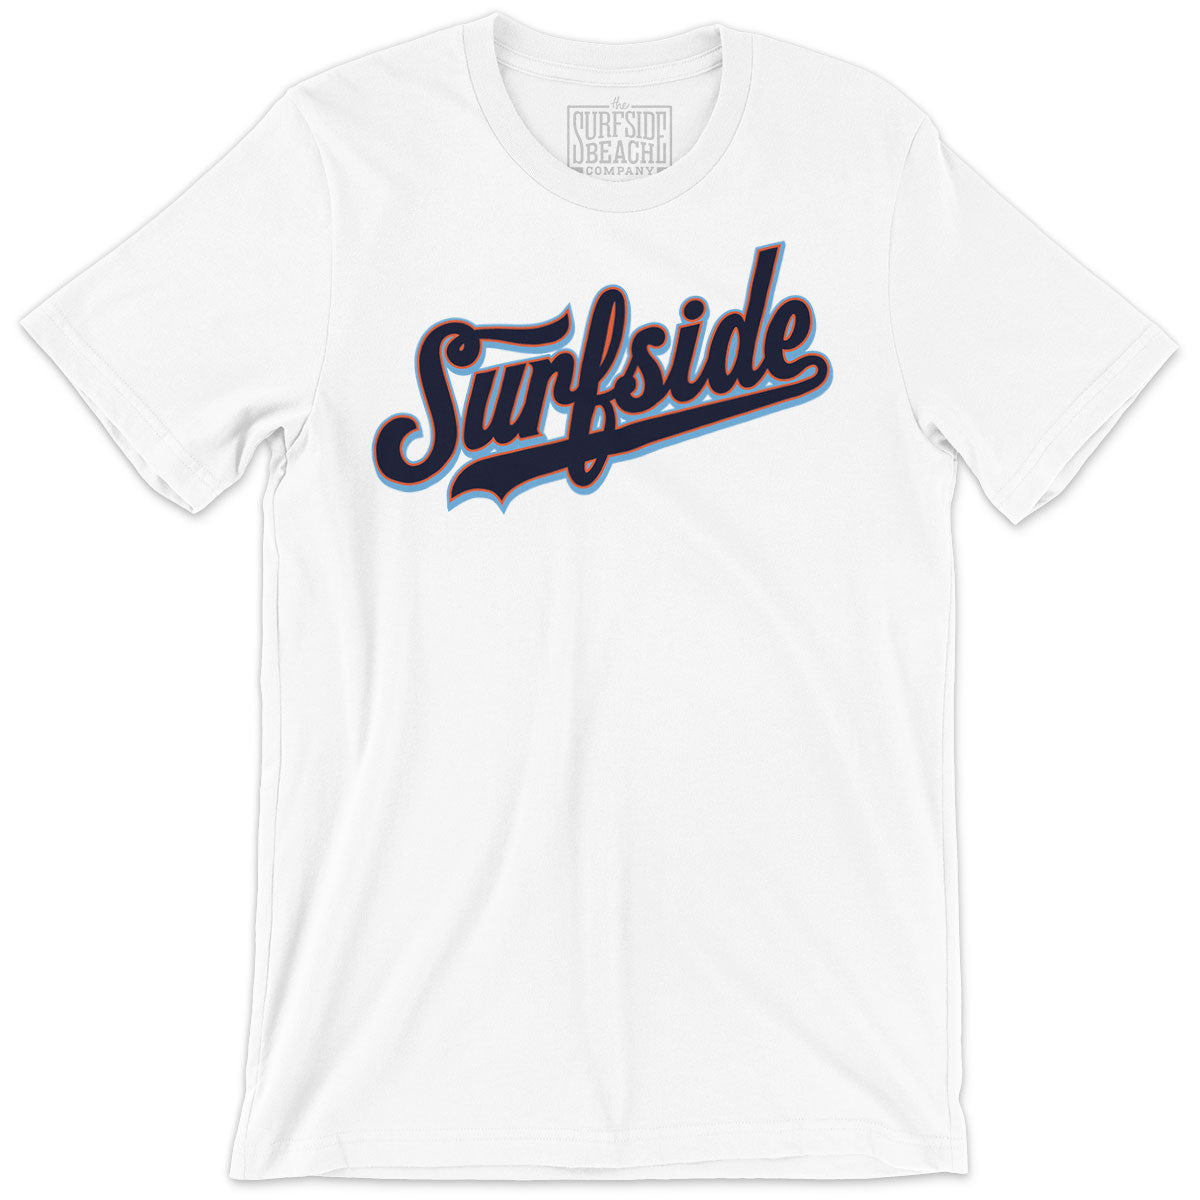 Surfside (Team Script): Unisex T-Shirt